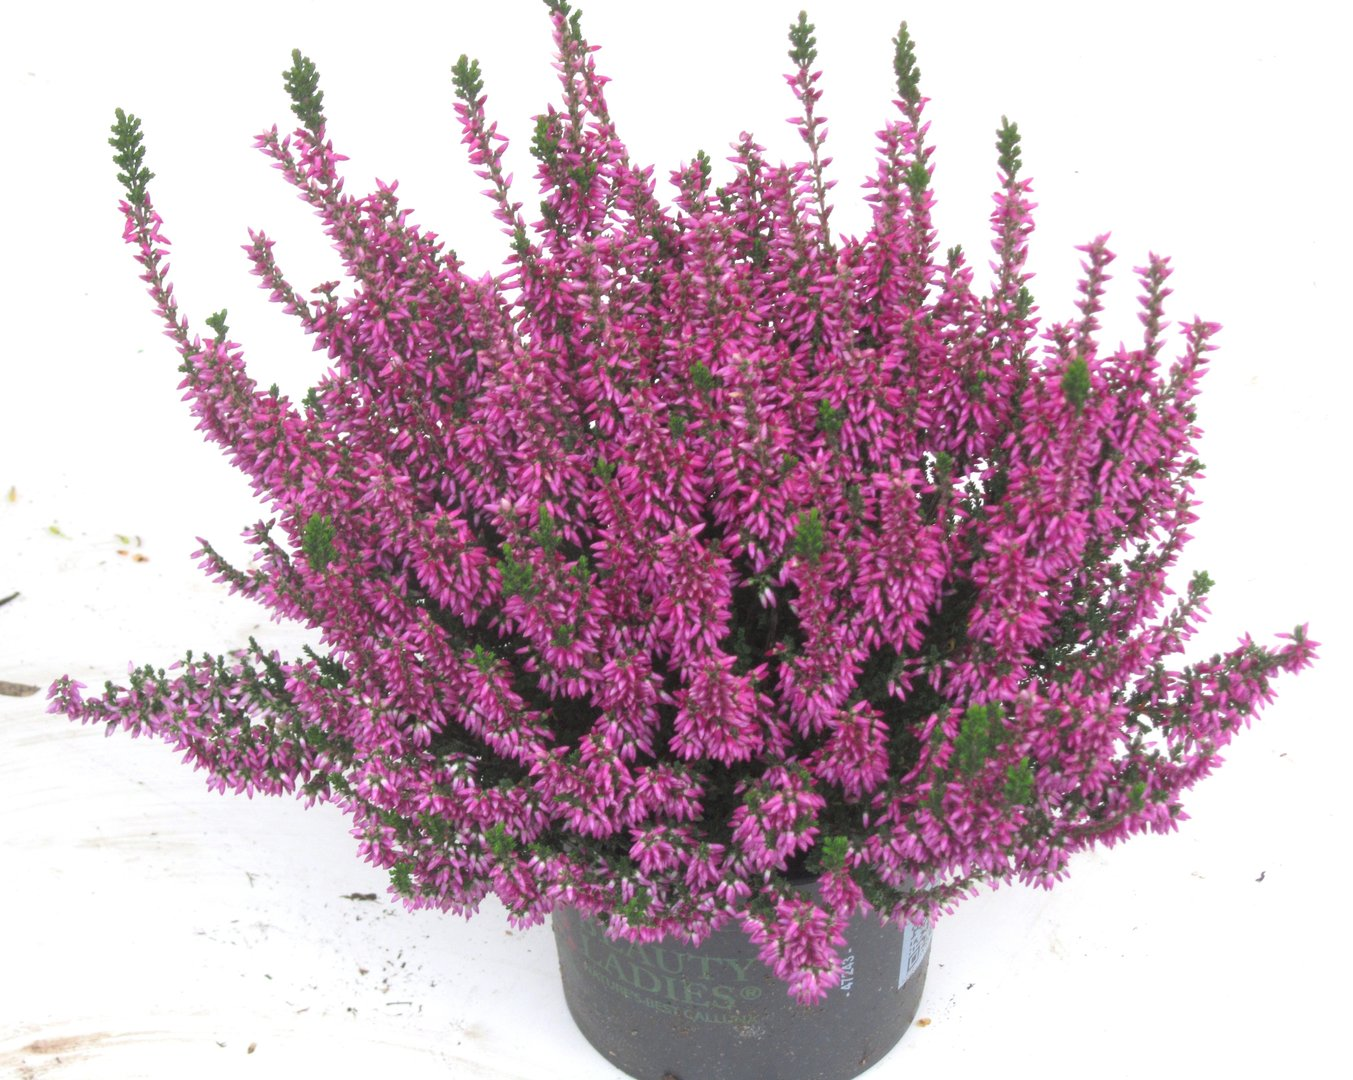 calluna vulgaris besenheide heidekraut lila 12 cm topf. Black Bedroom Furniture Sets. Home Design Ideas